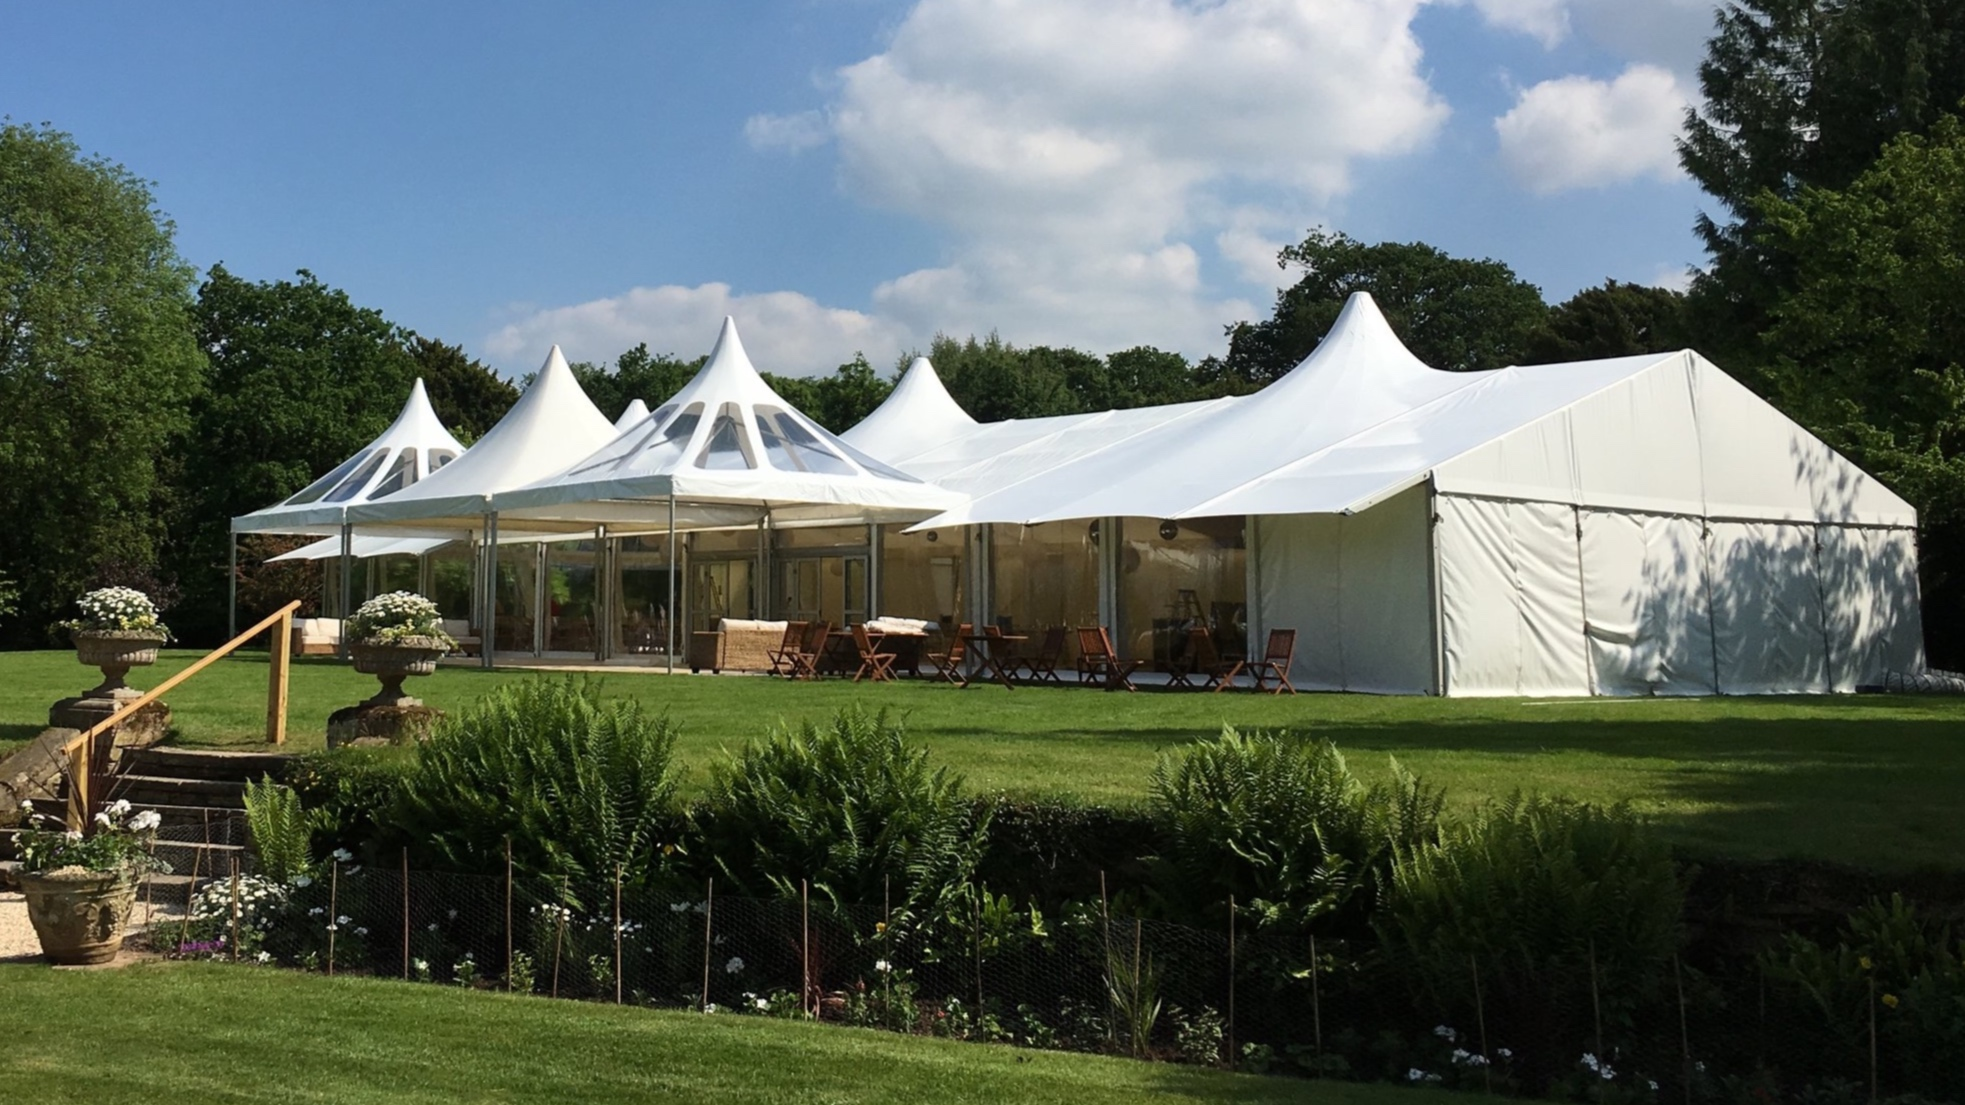 Clearspan Marquee with peaked roofs, We are able to add more interesting features to the usual 'White Box Marquee'.